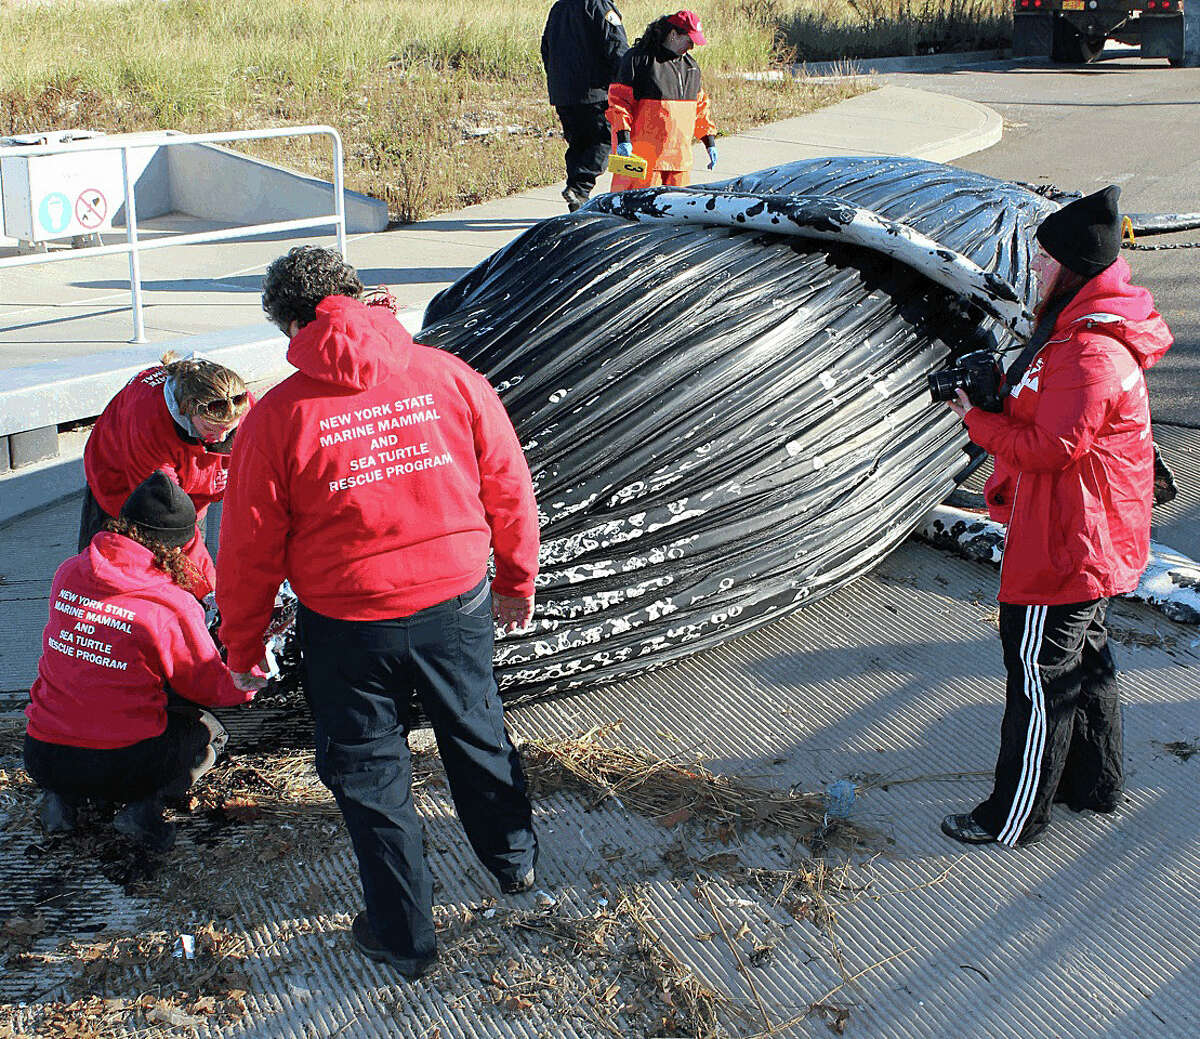 A dead humpback whale is examined after it was found in Long Island Sound off Huntington, N.Y., on Saturday.